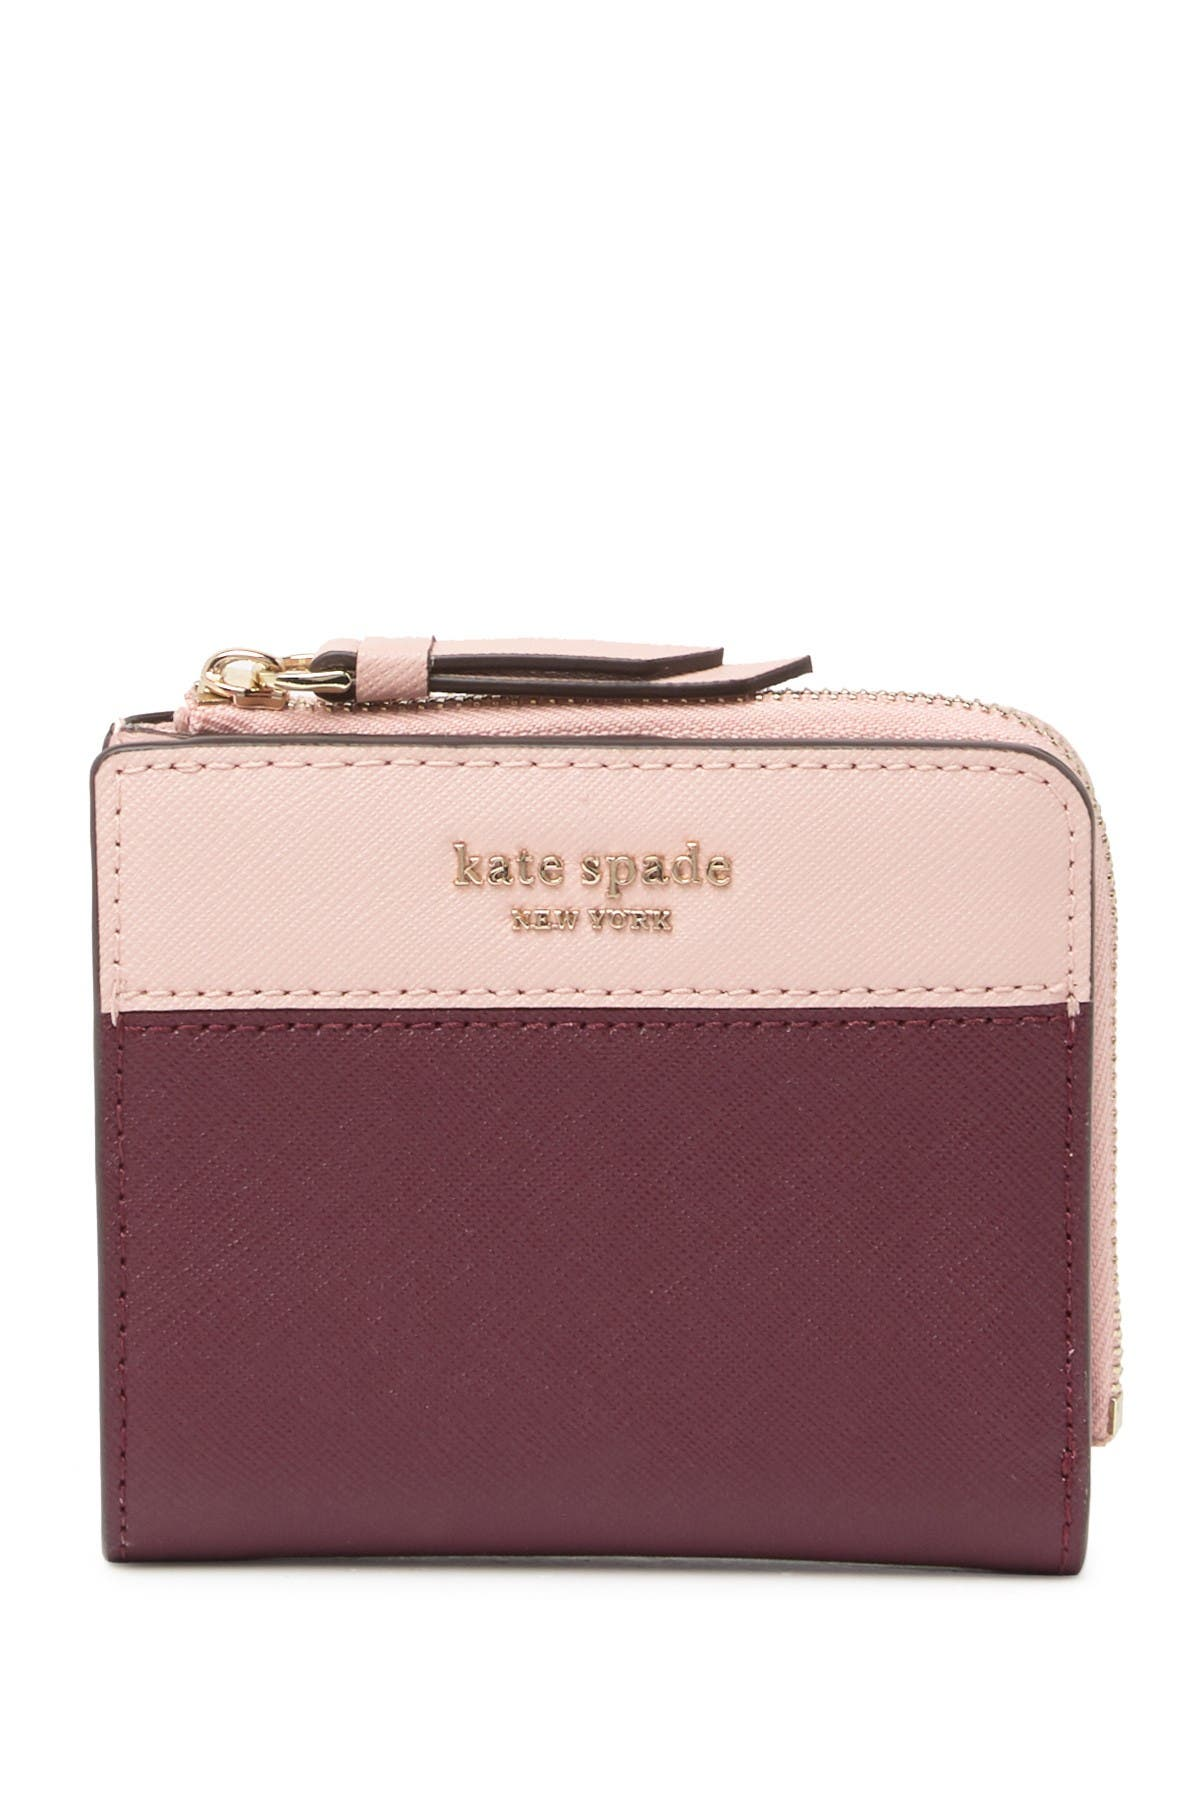 Image of kate spade new york cameron leather small bifold wallet